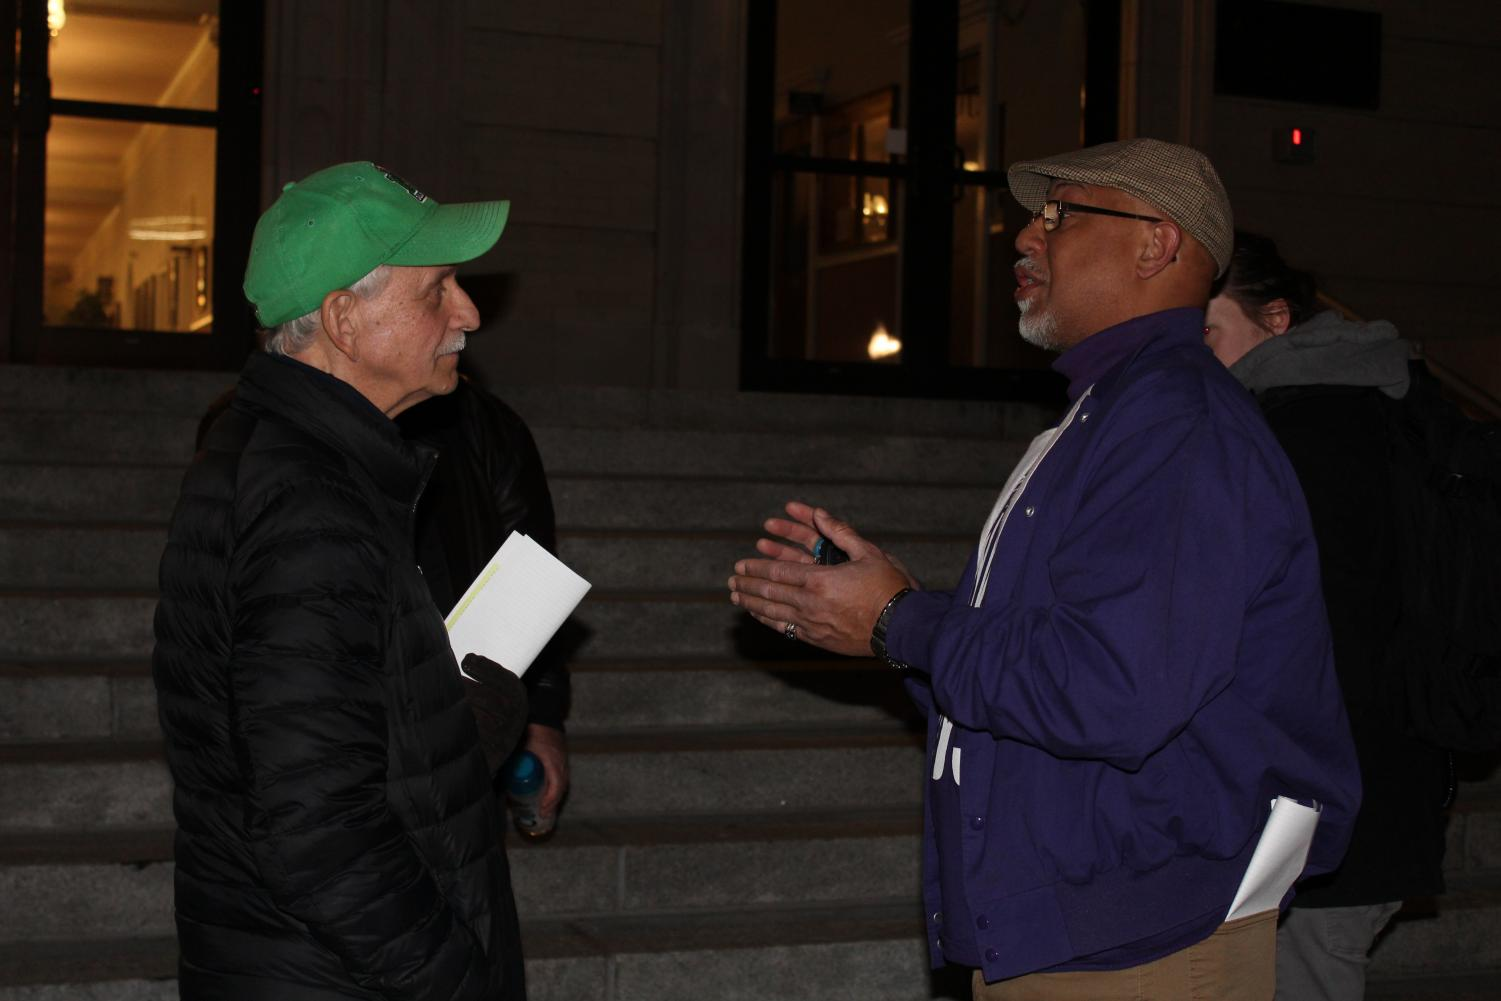 Huntington resident Mark Connelly talks with Damon Core, an executive board member of SEIU 1199, about the hospital board deal ordinance outside the Huntington City Council meeting.